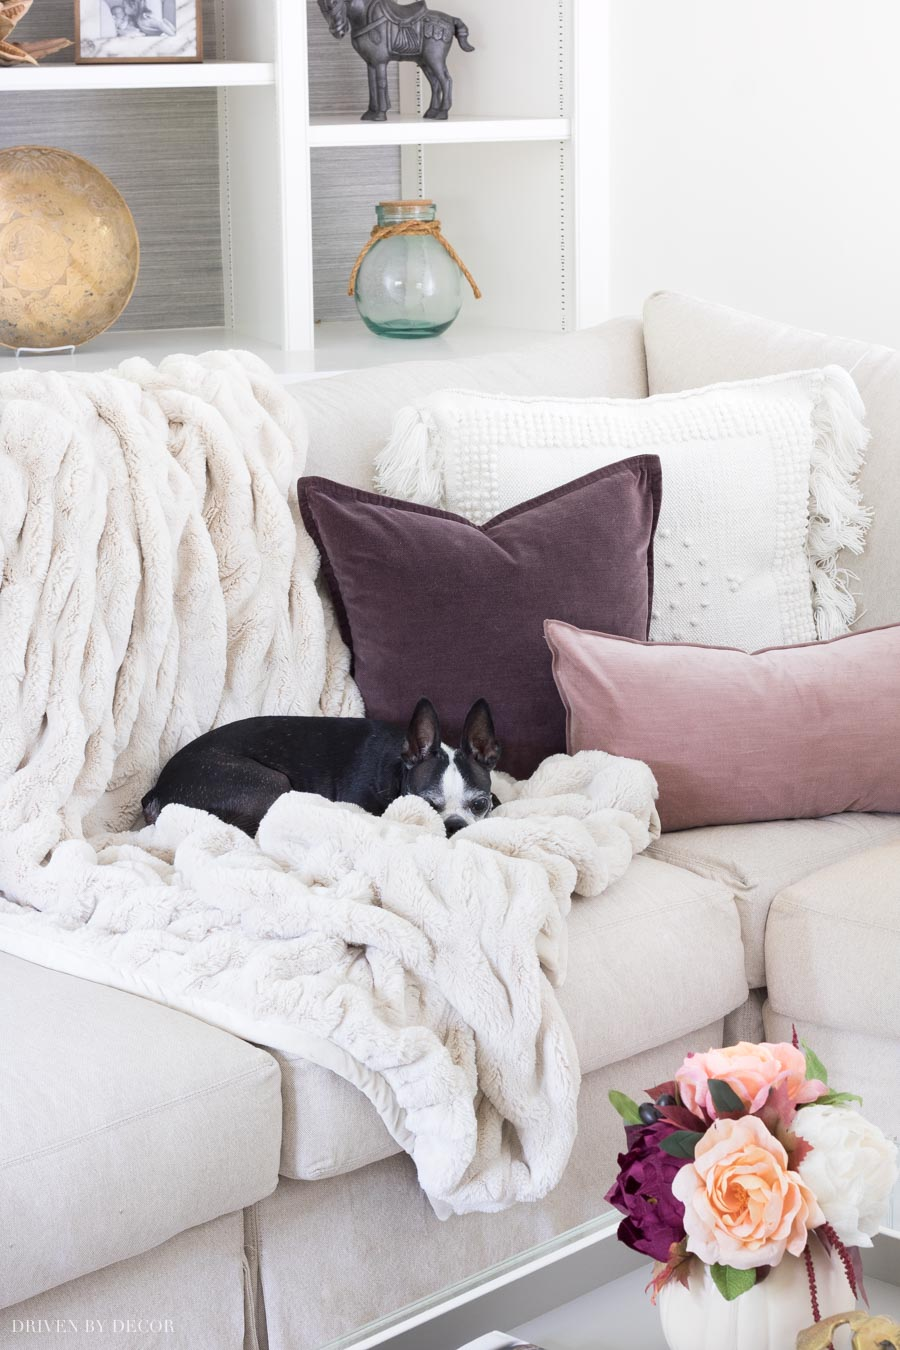 Our favorite fur throw - so super soft and washes beautifully!